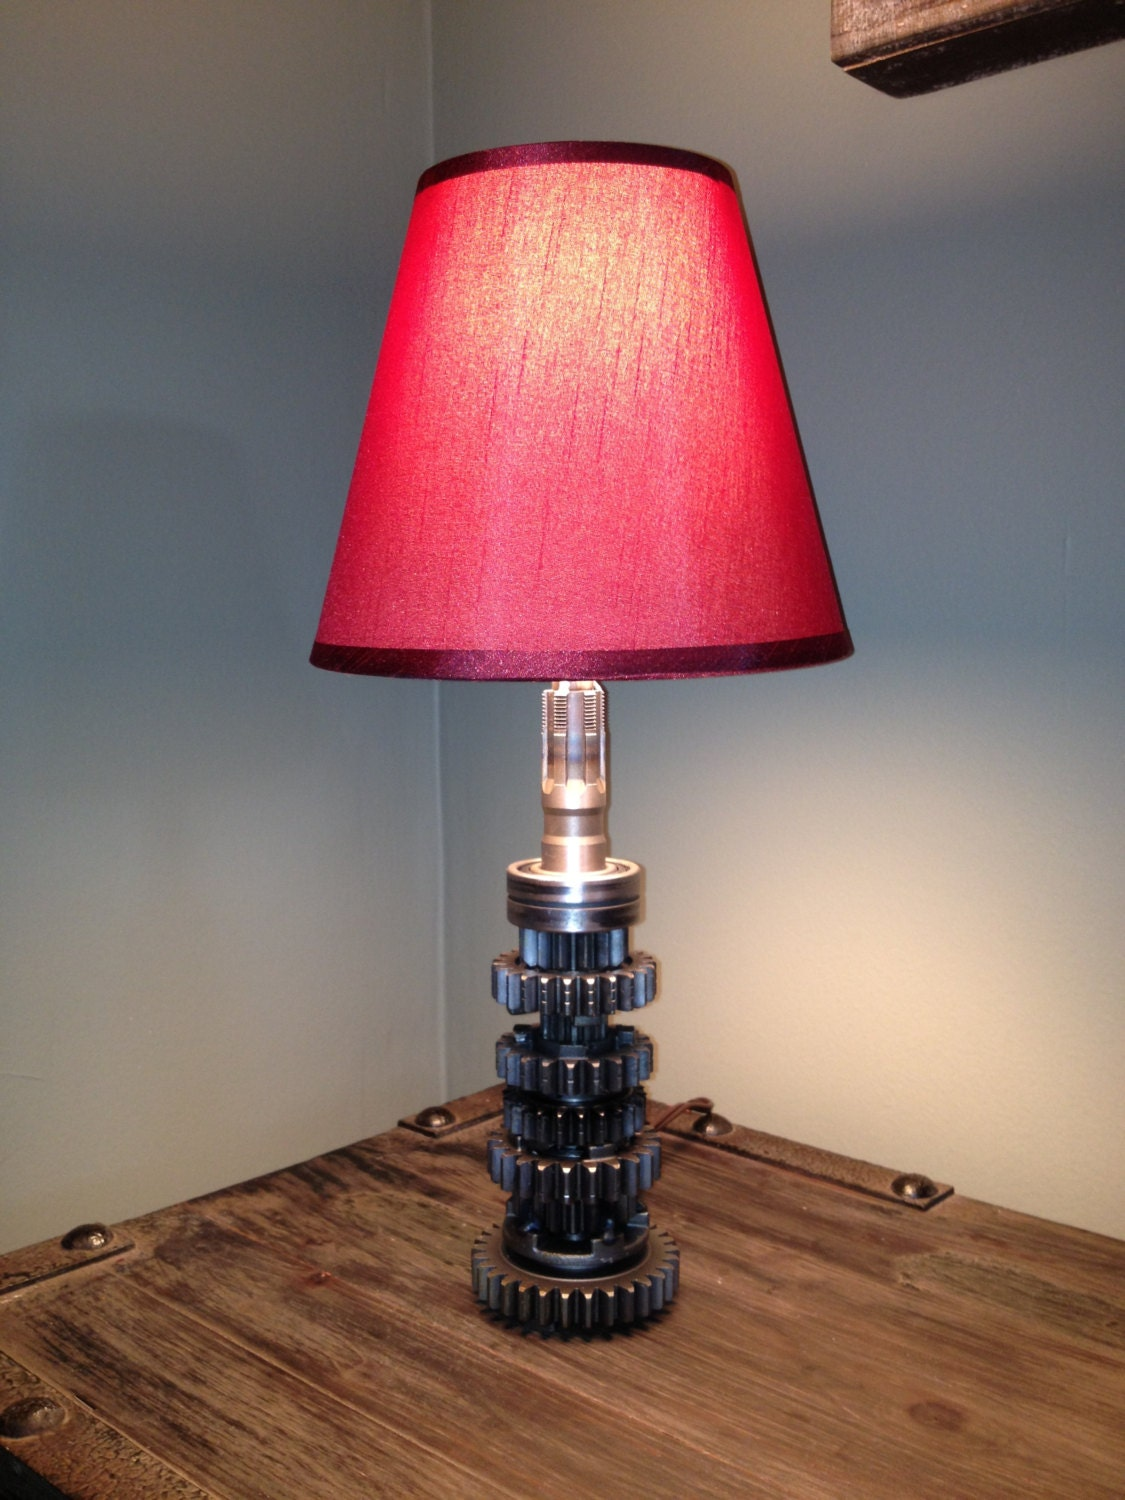 Hand crafted table lamp using repurposed engine car parts for Cars 2 table lamp